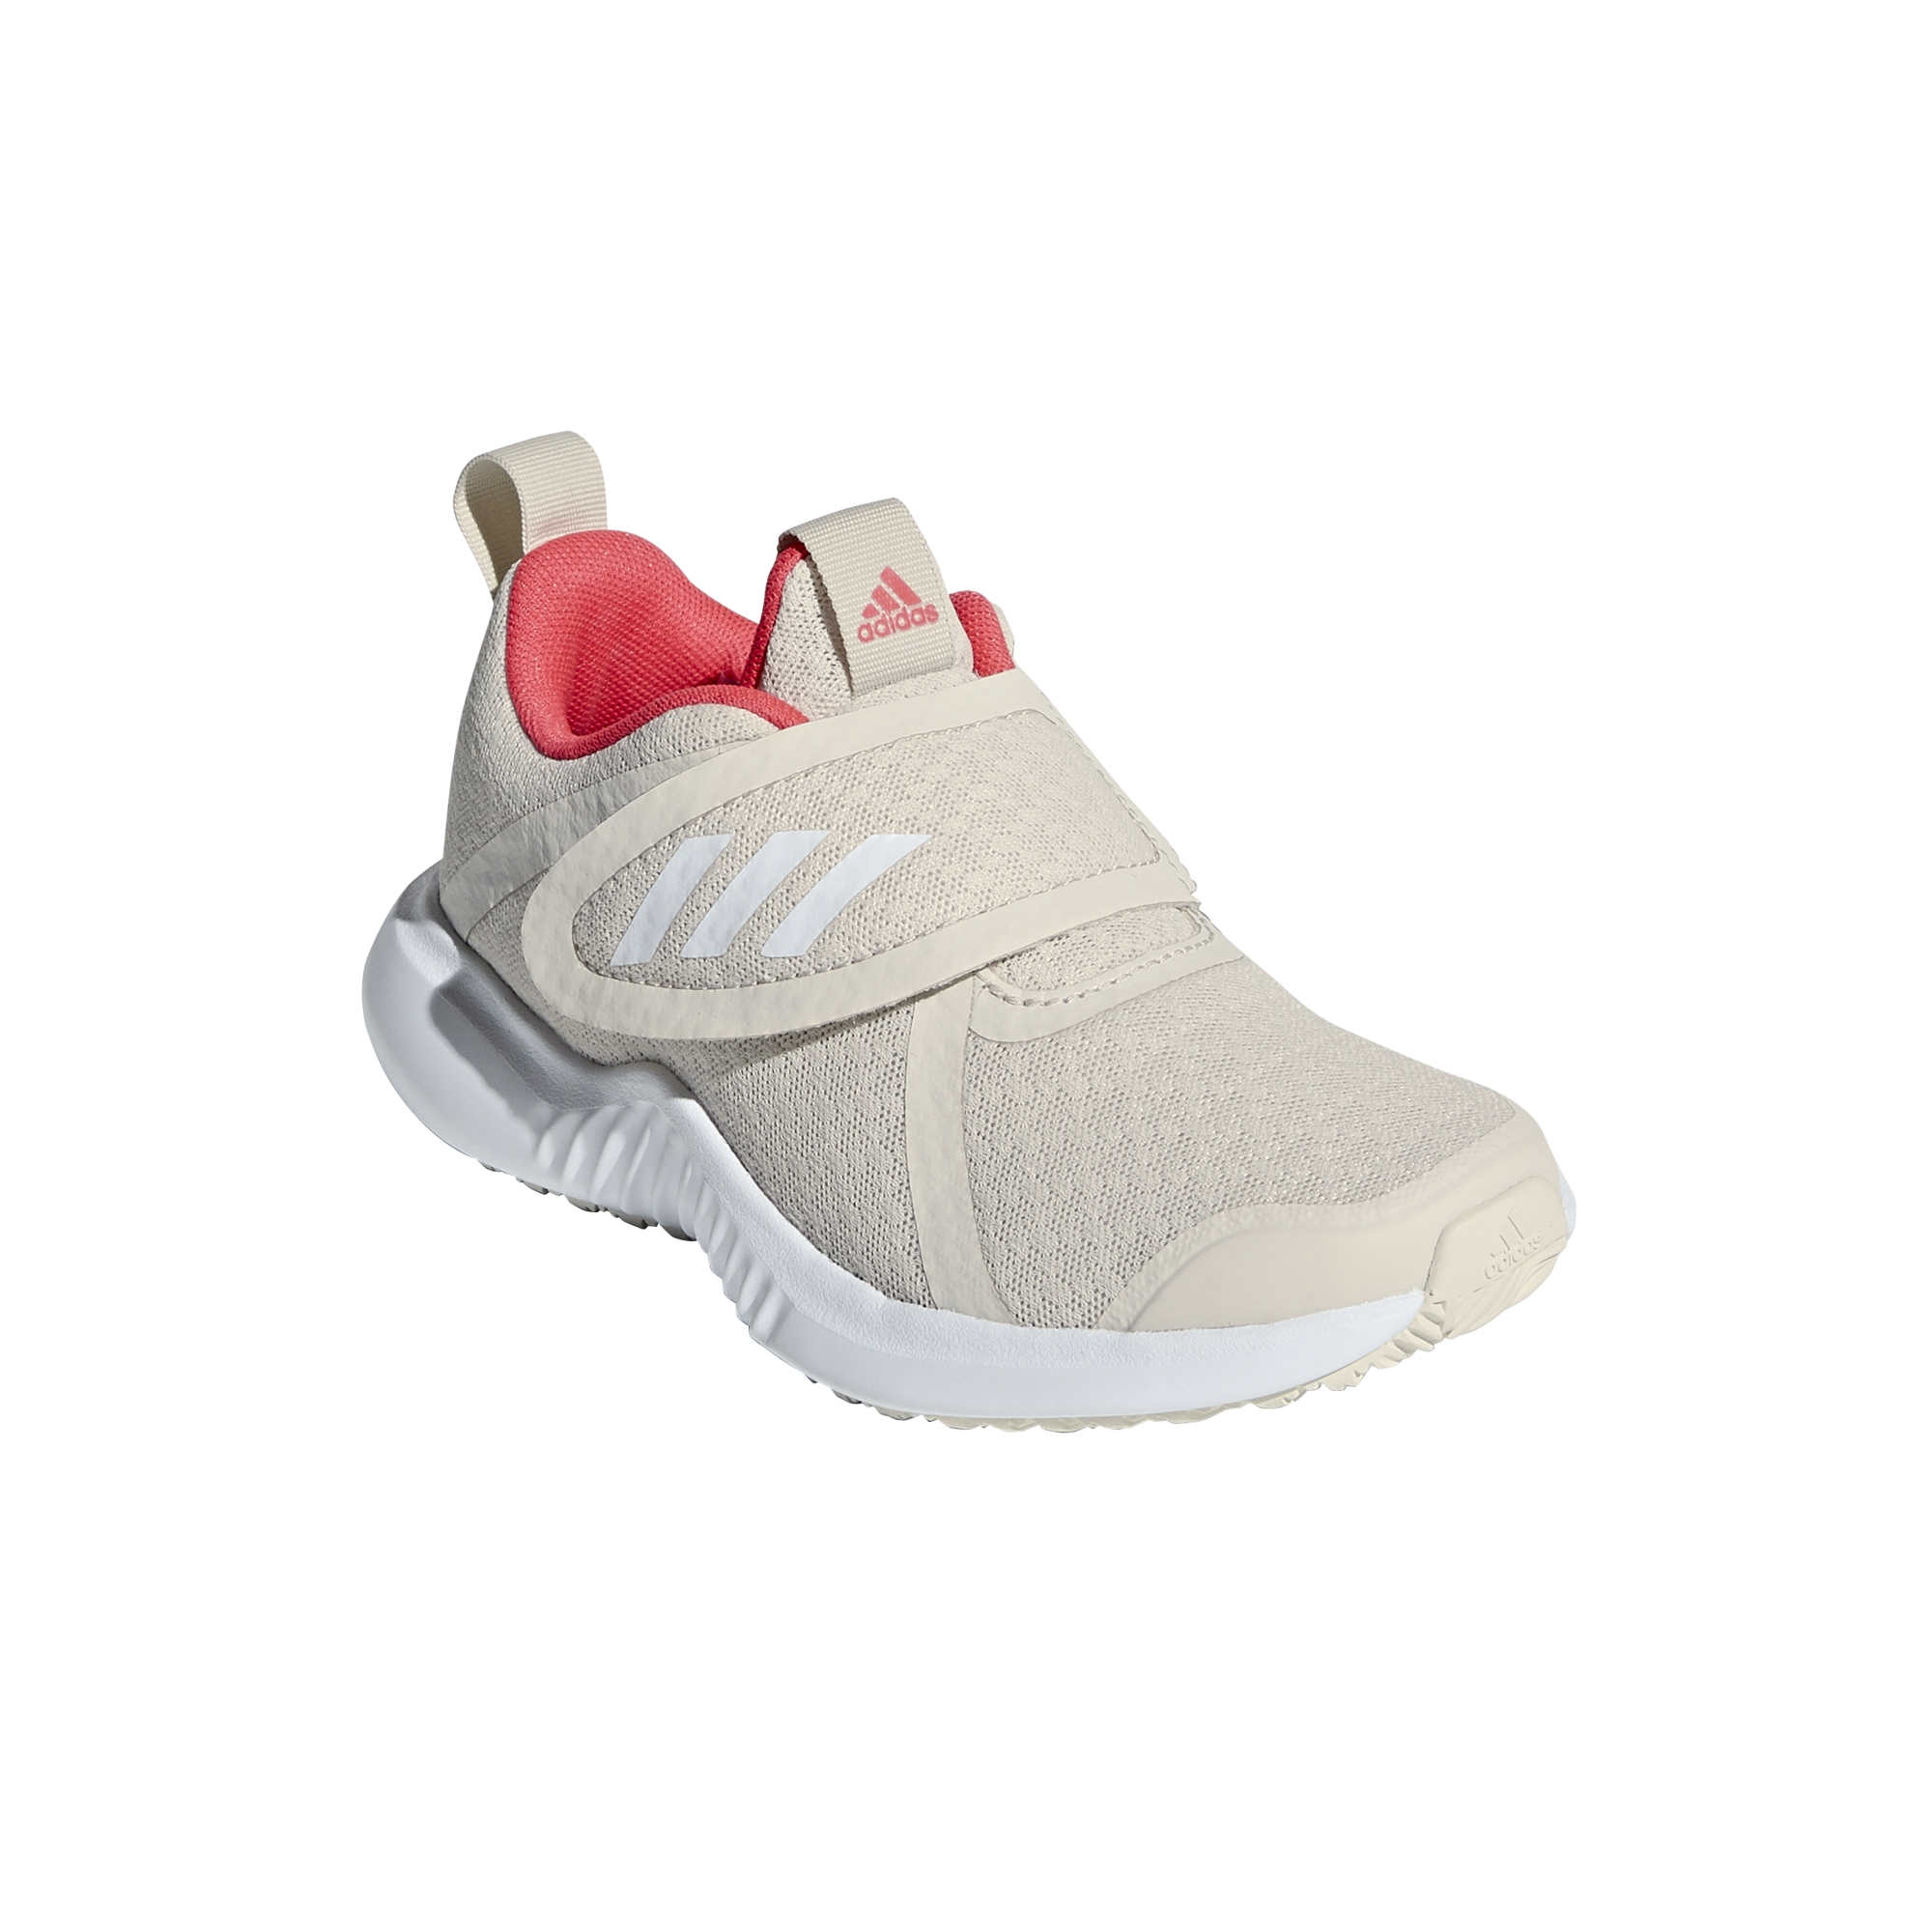 finest selection 7eb33 2e6f8 Chaussures kid adidas FortaRun X